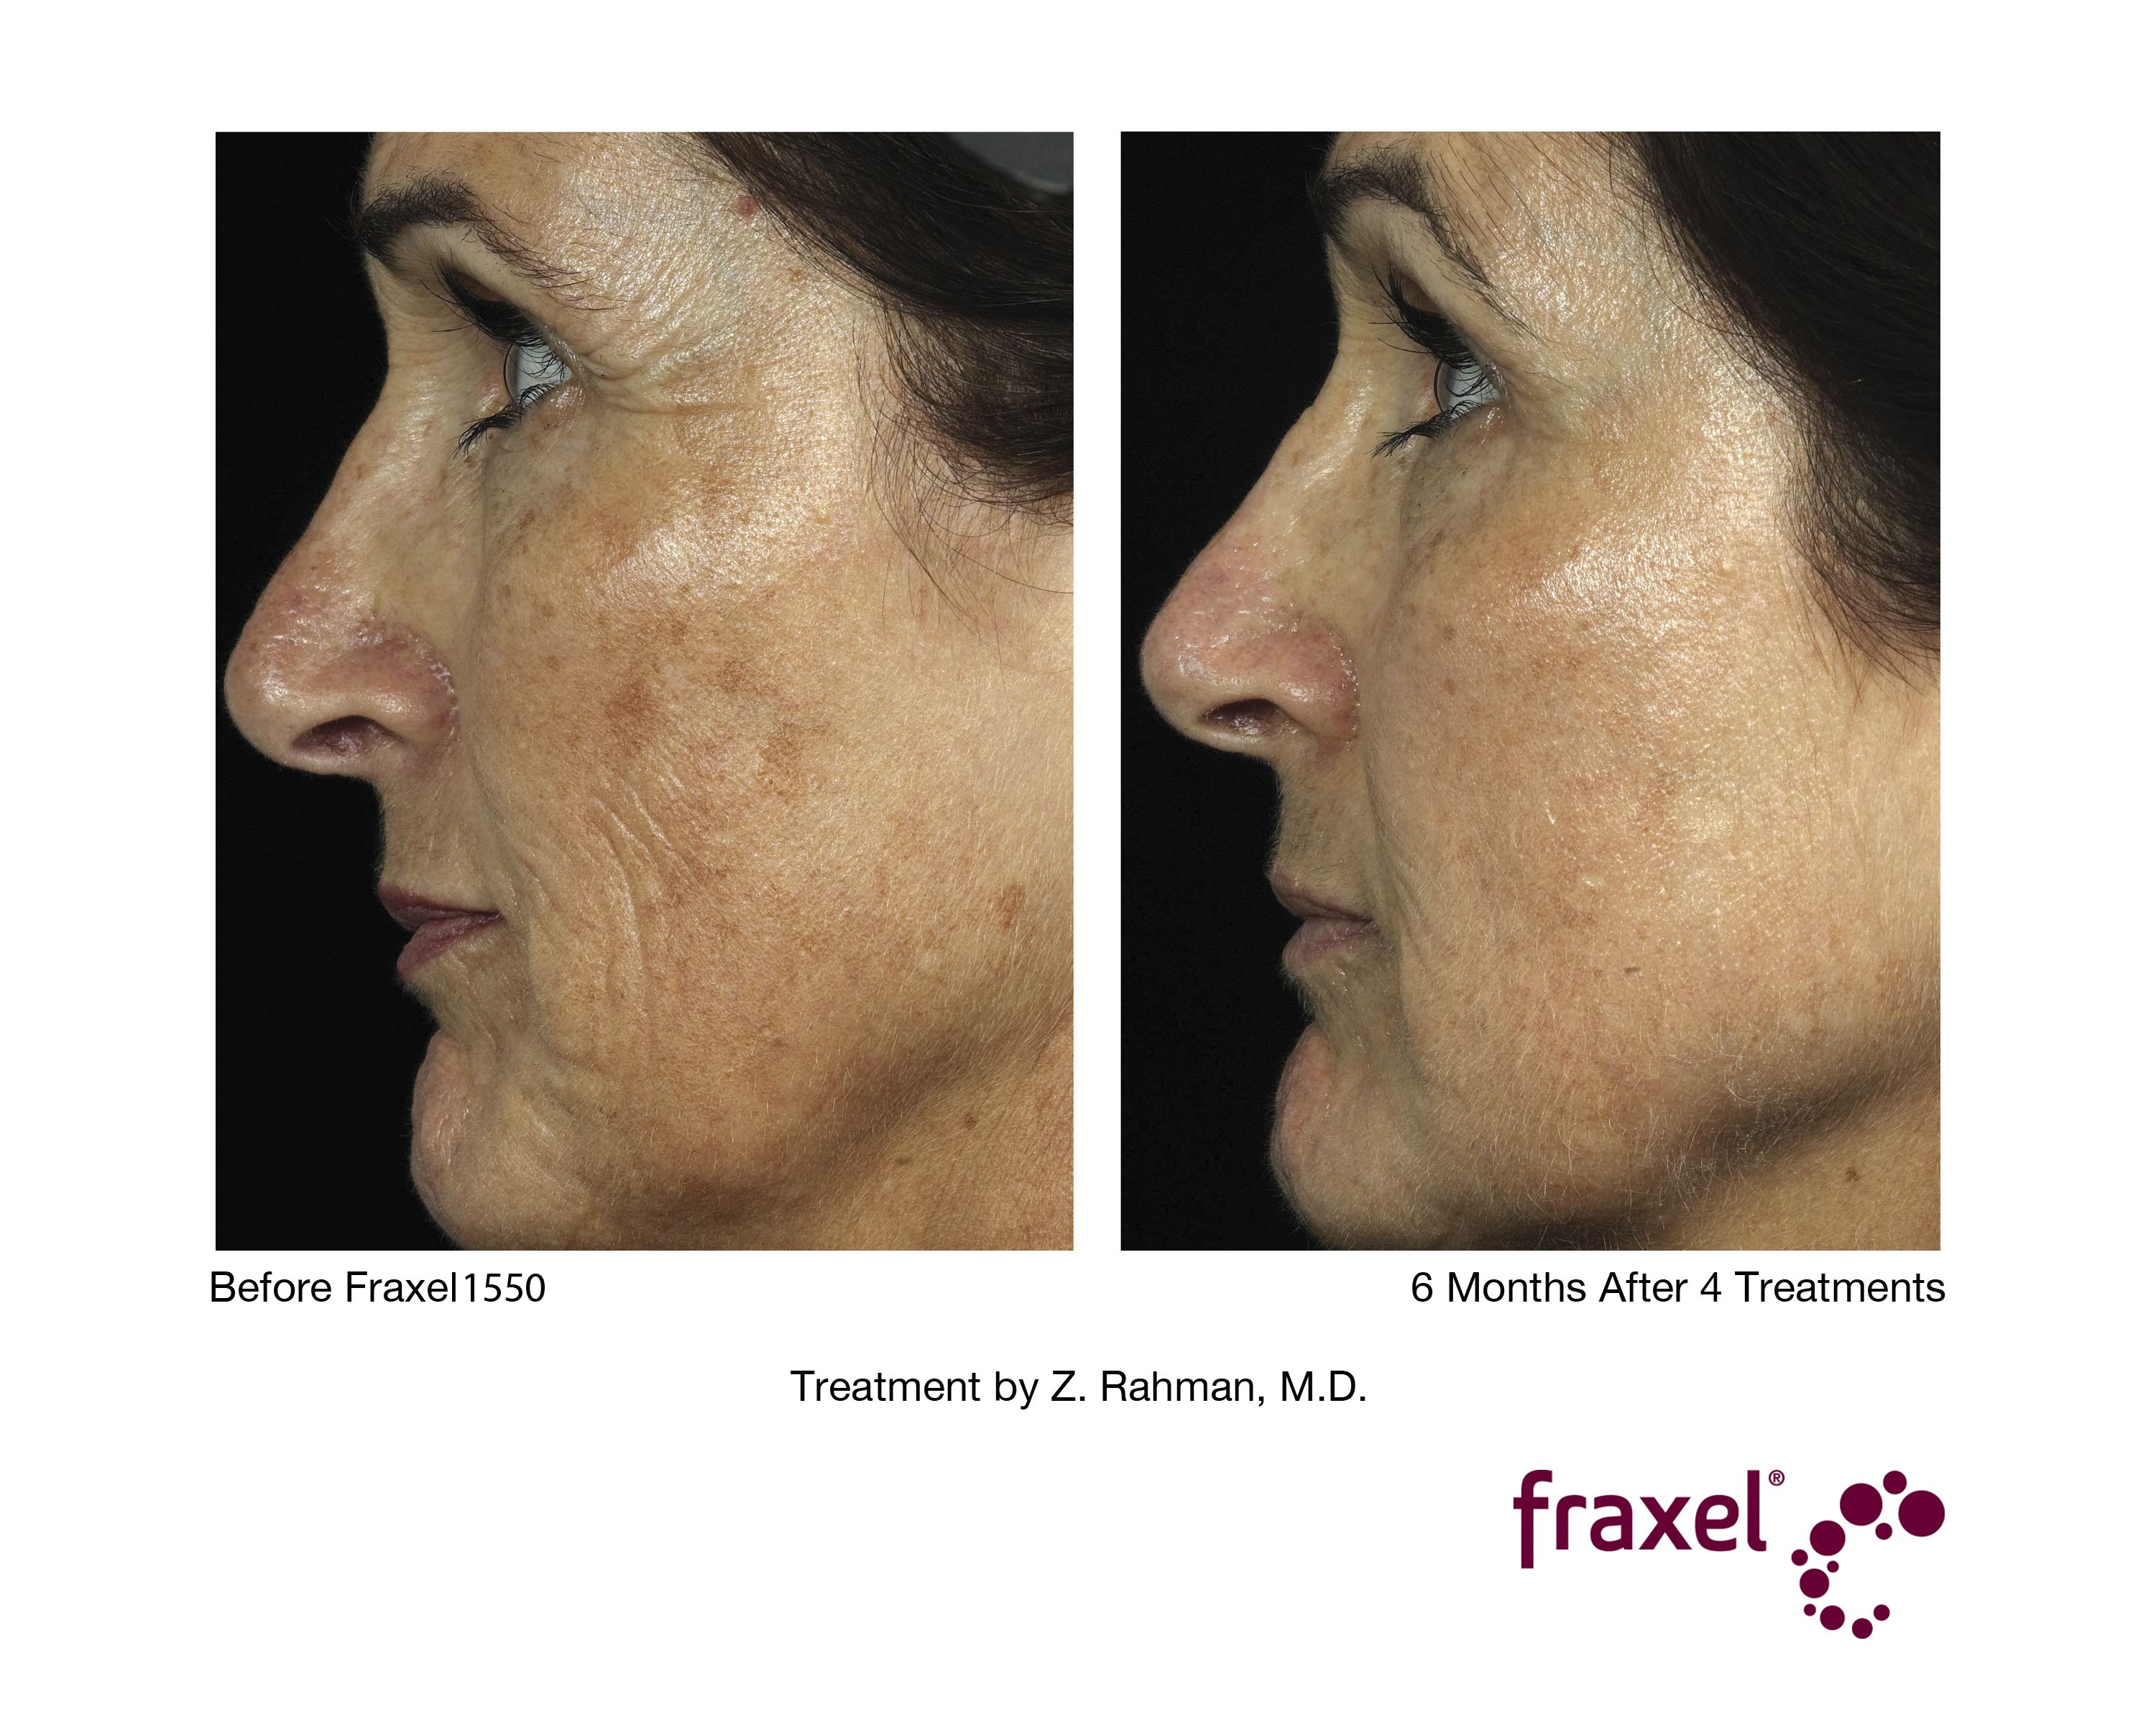 6 Months After 4 Fraxel Treatments